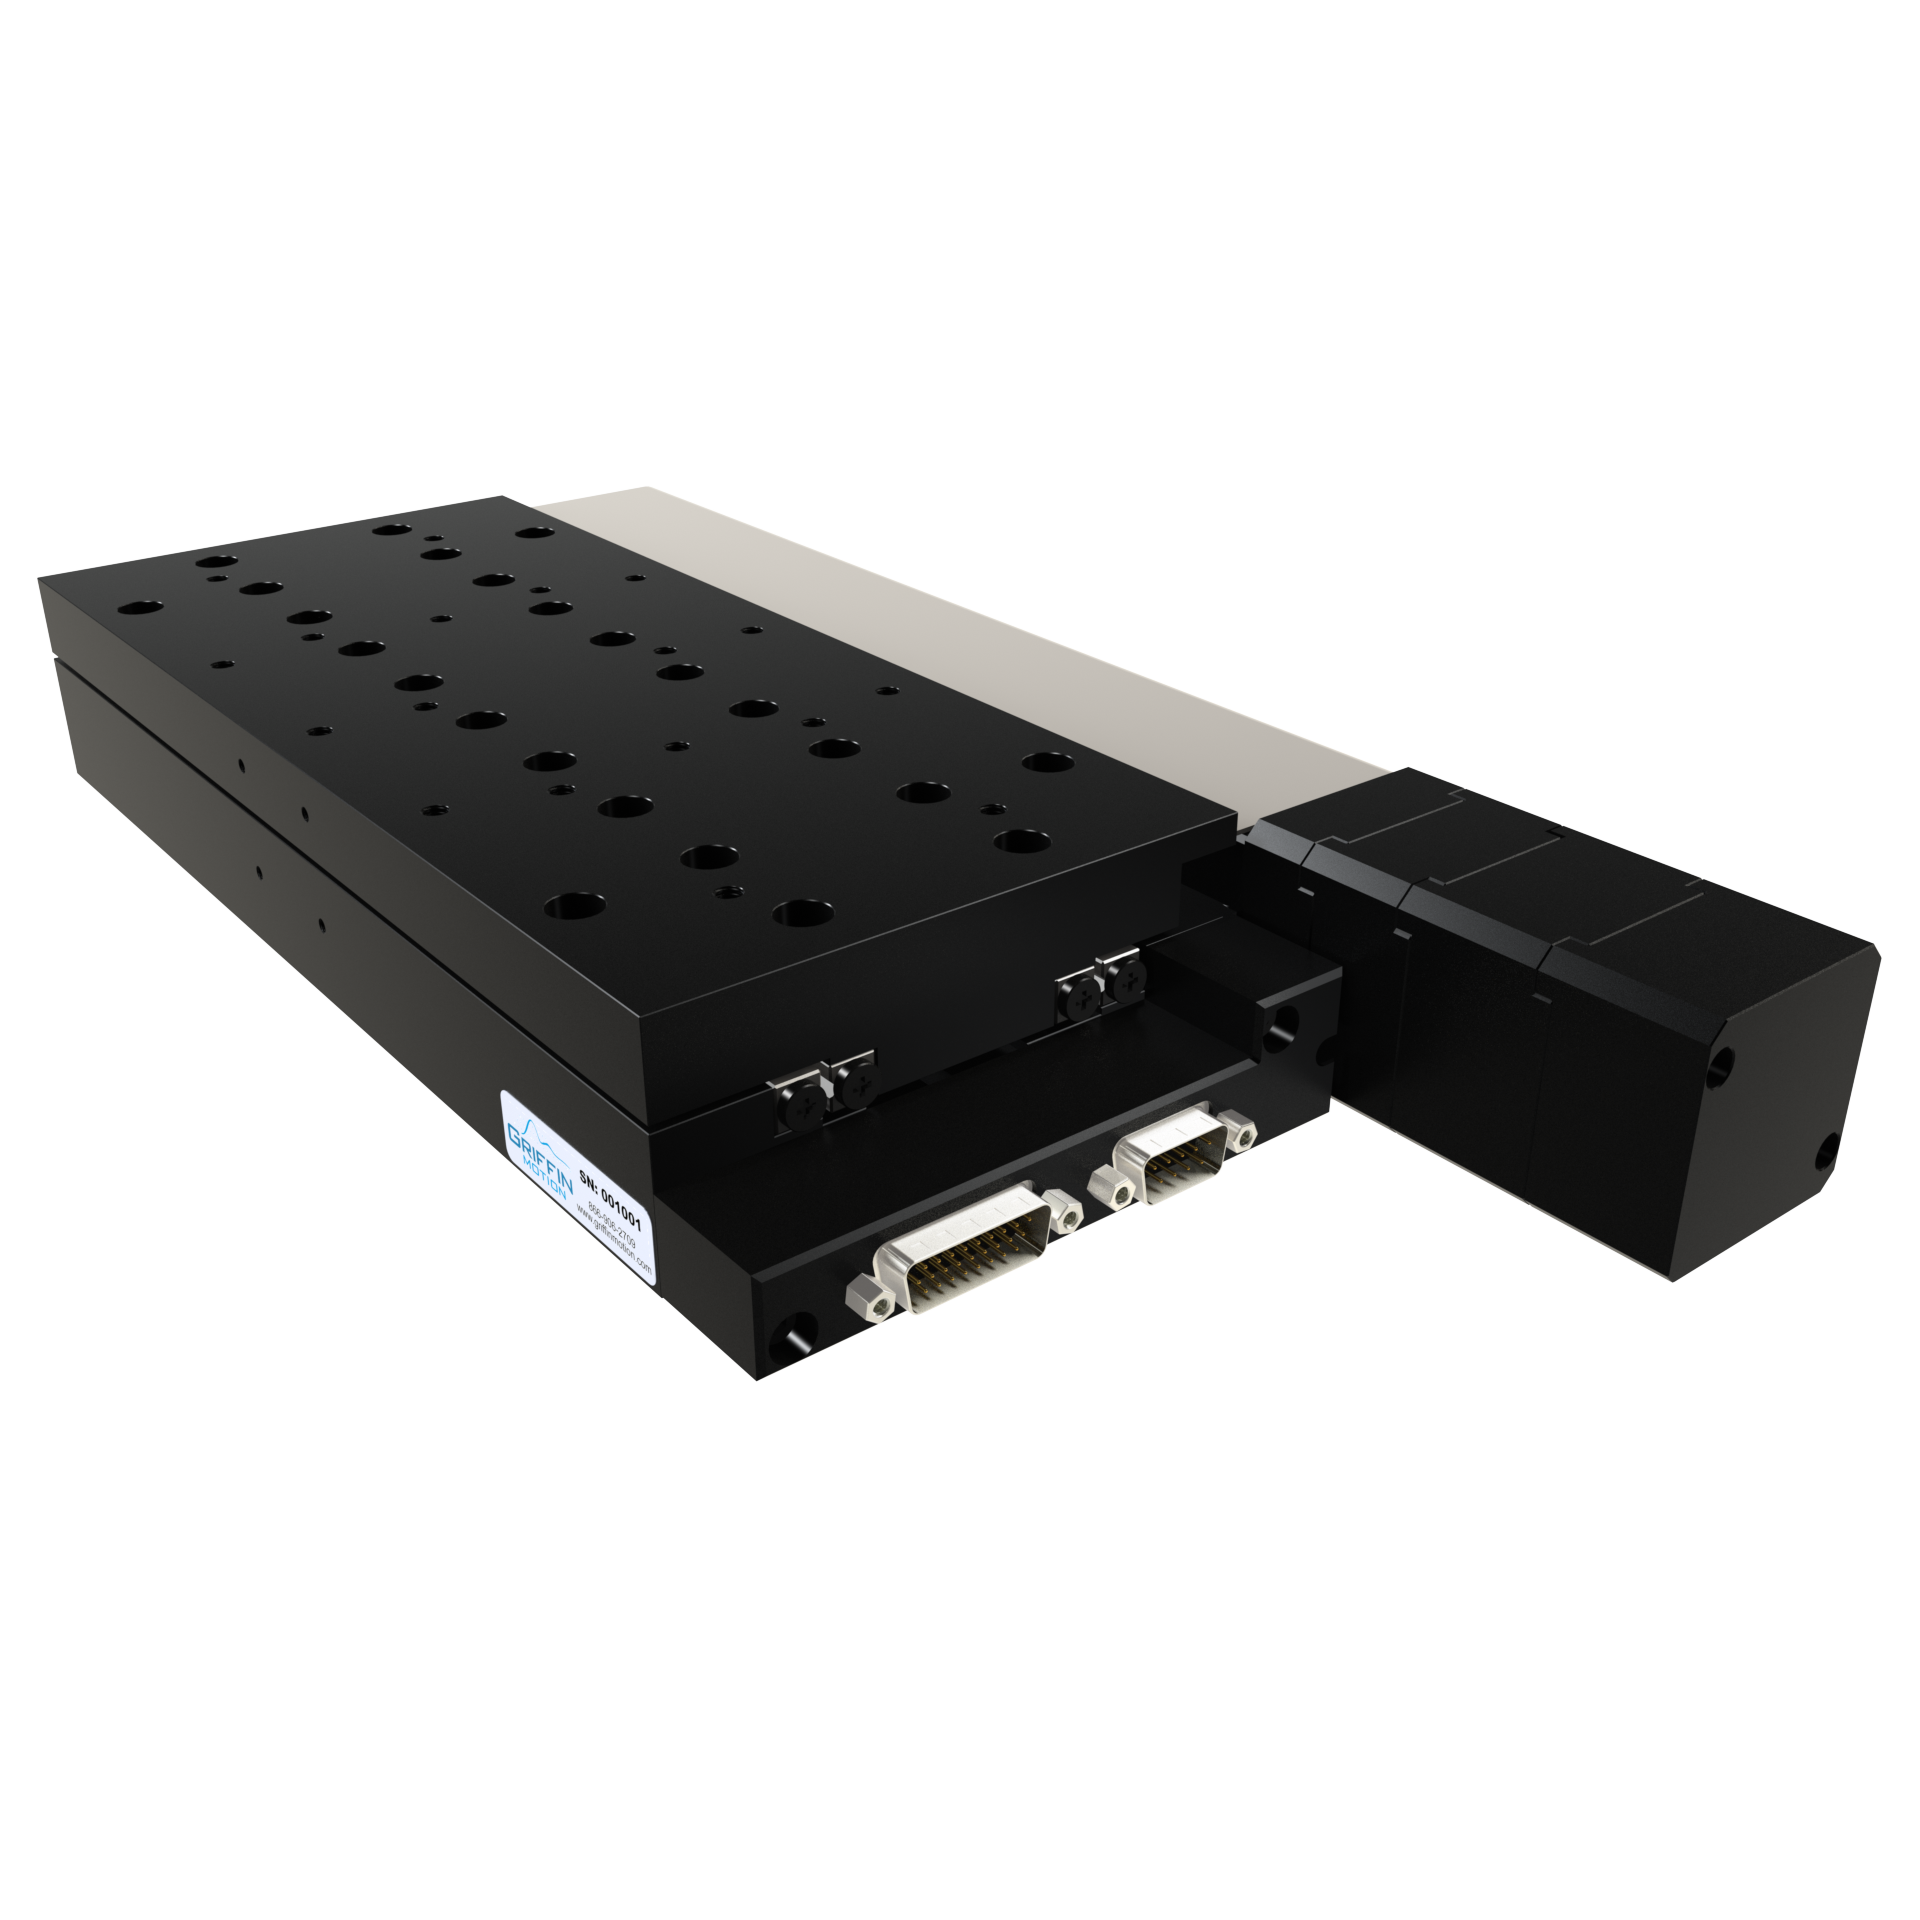 Precision Linear Stage with Brushless Servo Ball Screw Drive, Crossed Roller Ways, Rotary Encoder, and Power off Brake